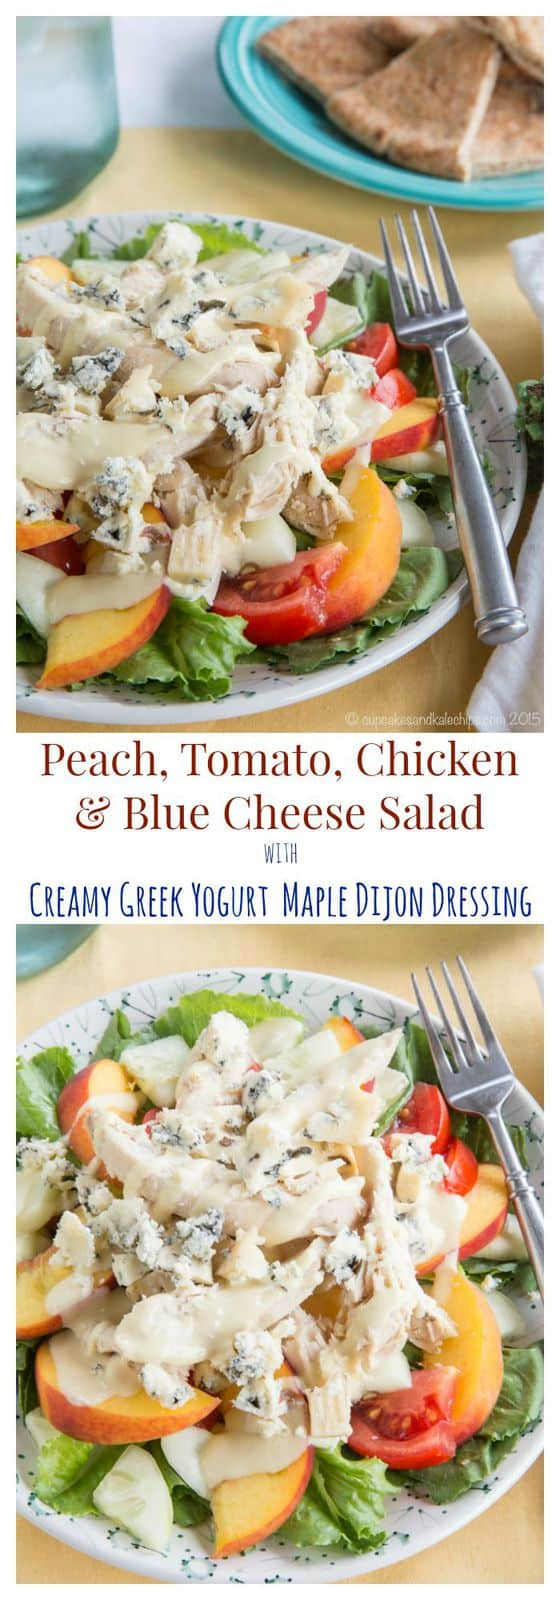 Peach, Tomato, Chicken and Blue Cheese Salad is a satisfying and fresh salad featuring the best late summer produce. | cupcakesandkalechips.com | gluten free recipe